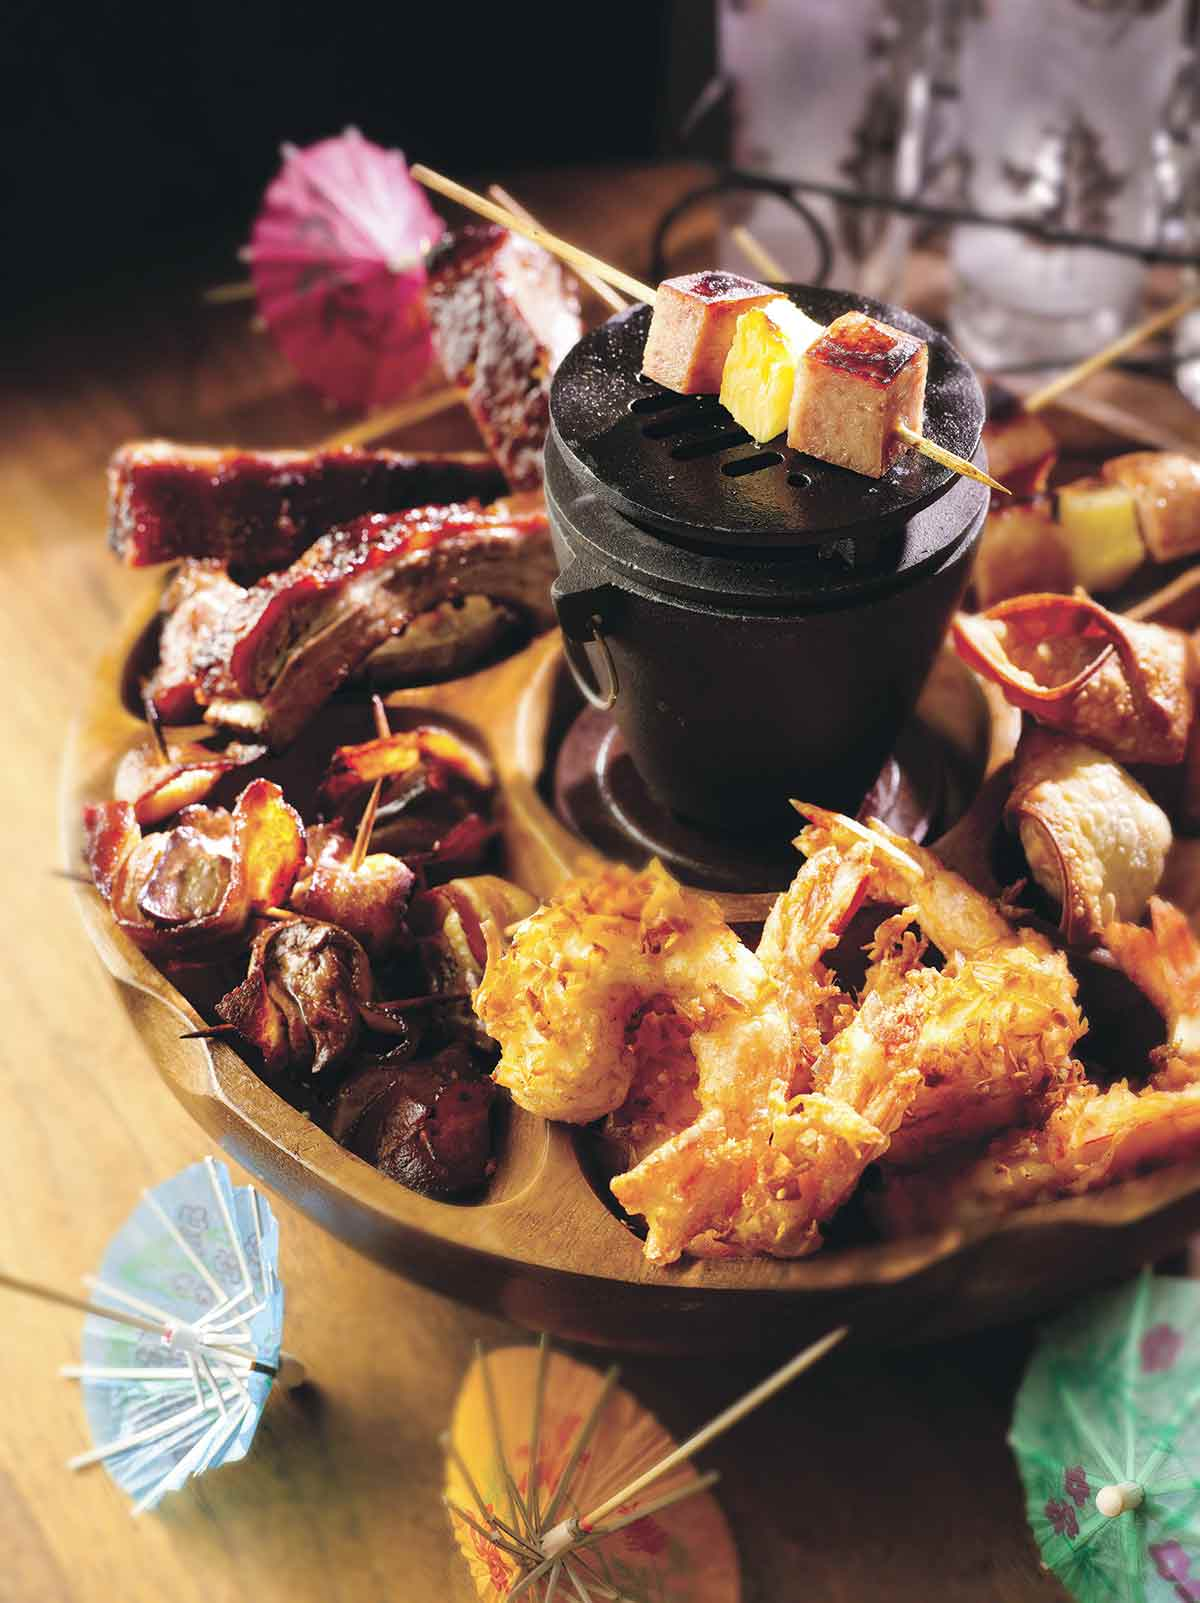 A wooden pupu platter filled with coconut shrimp, spam and pineapple skewers, and ribs.